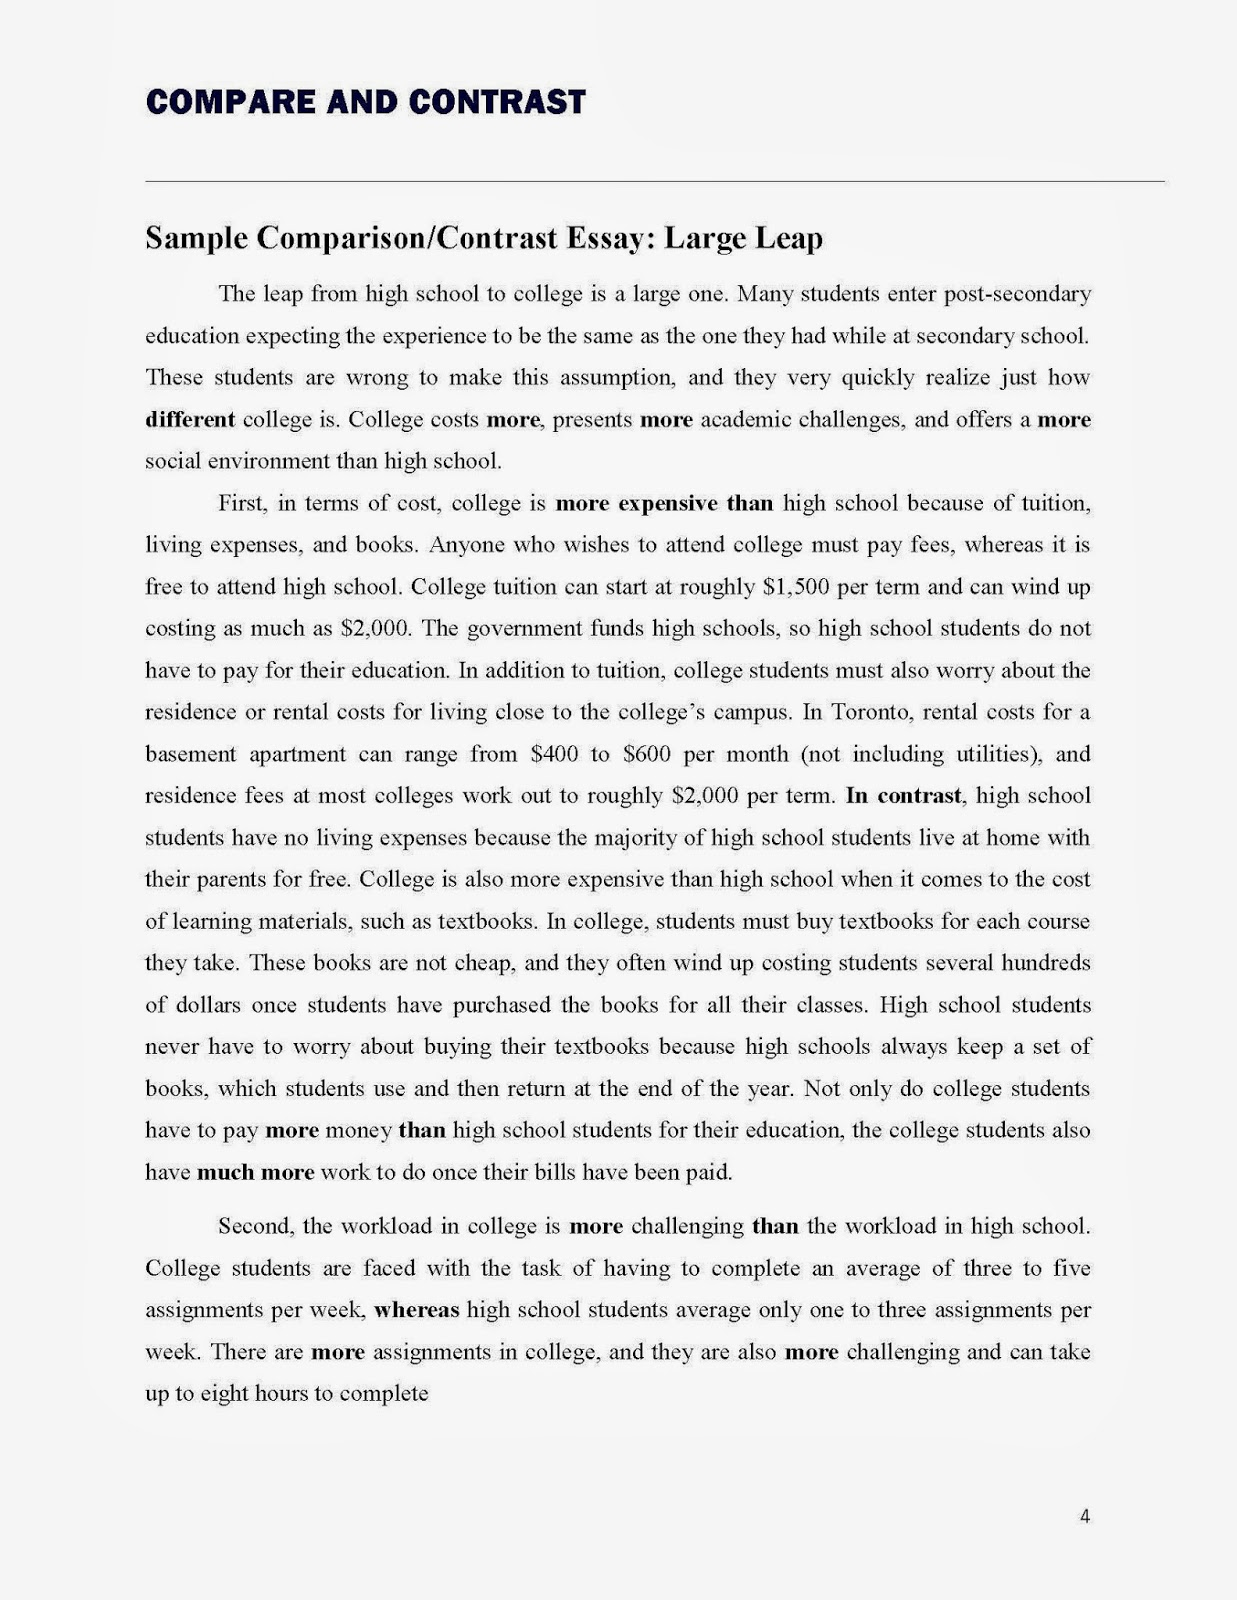 Compare And Contrast Essays Topics COMPAREBANDBCONTRASTBESSAY Page  Compare And Contrast Essays Topics